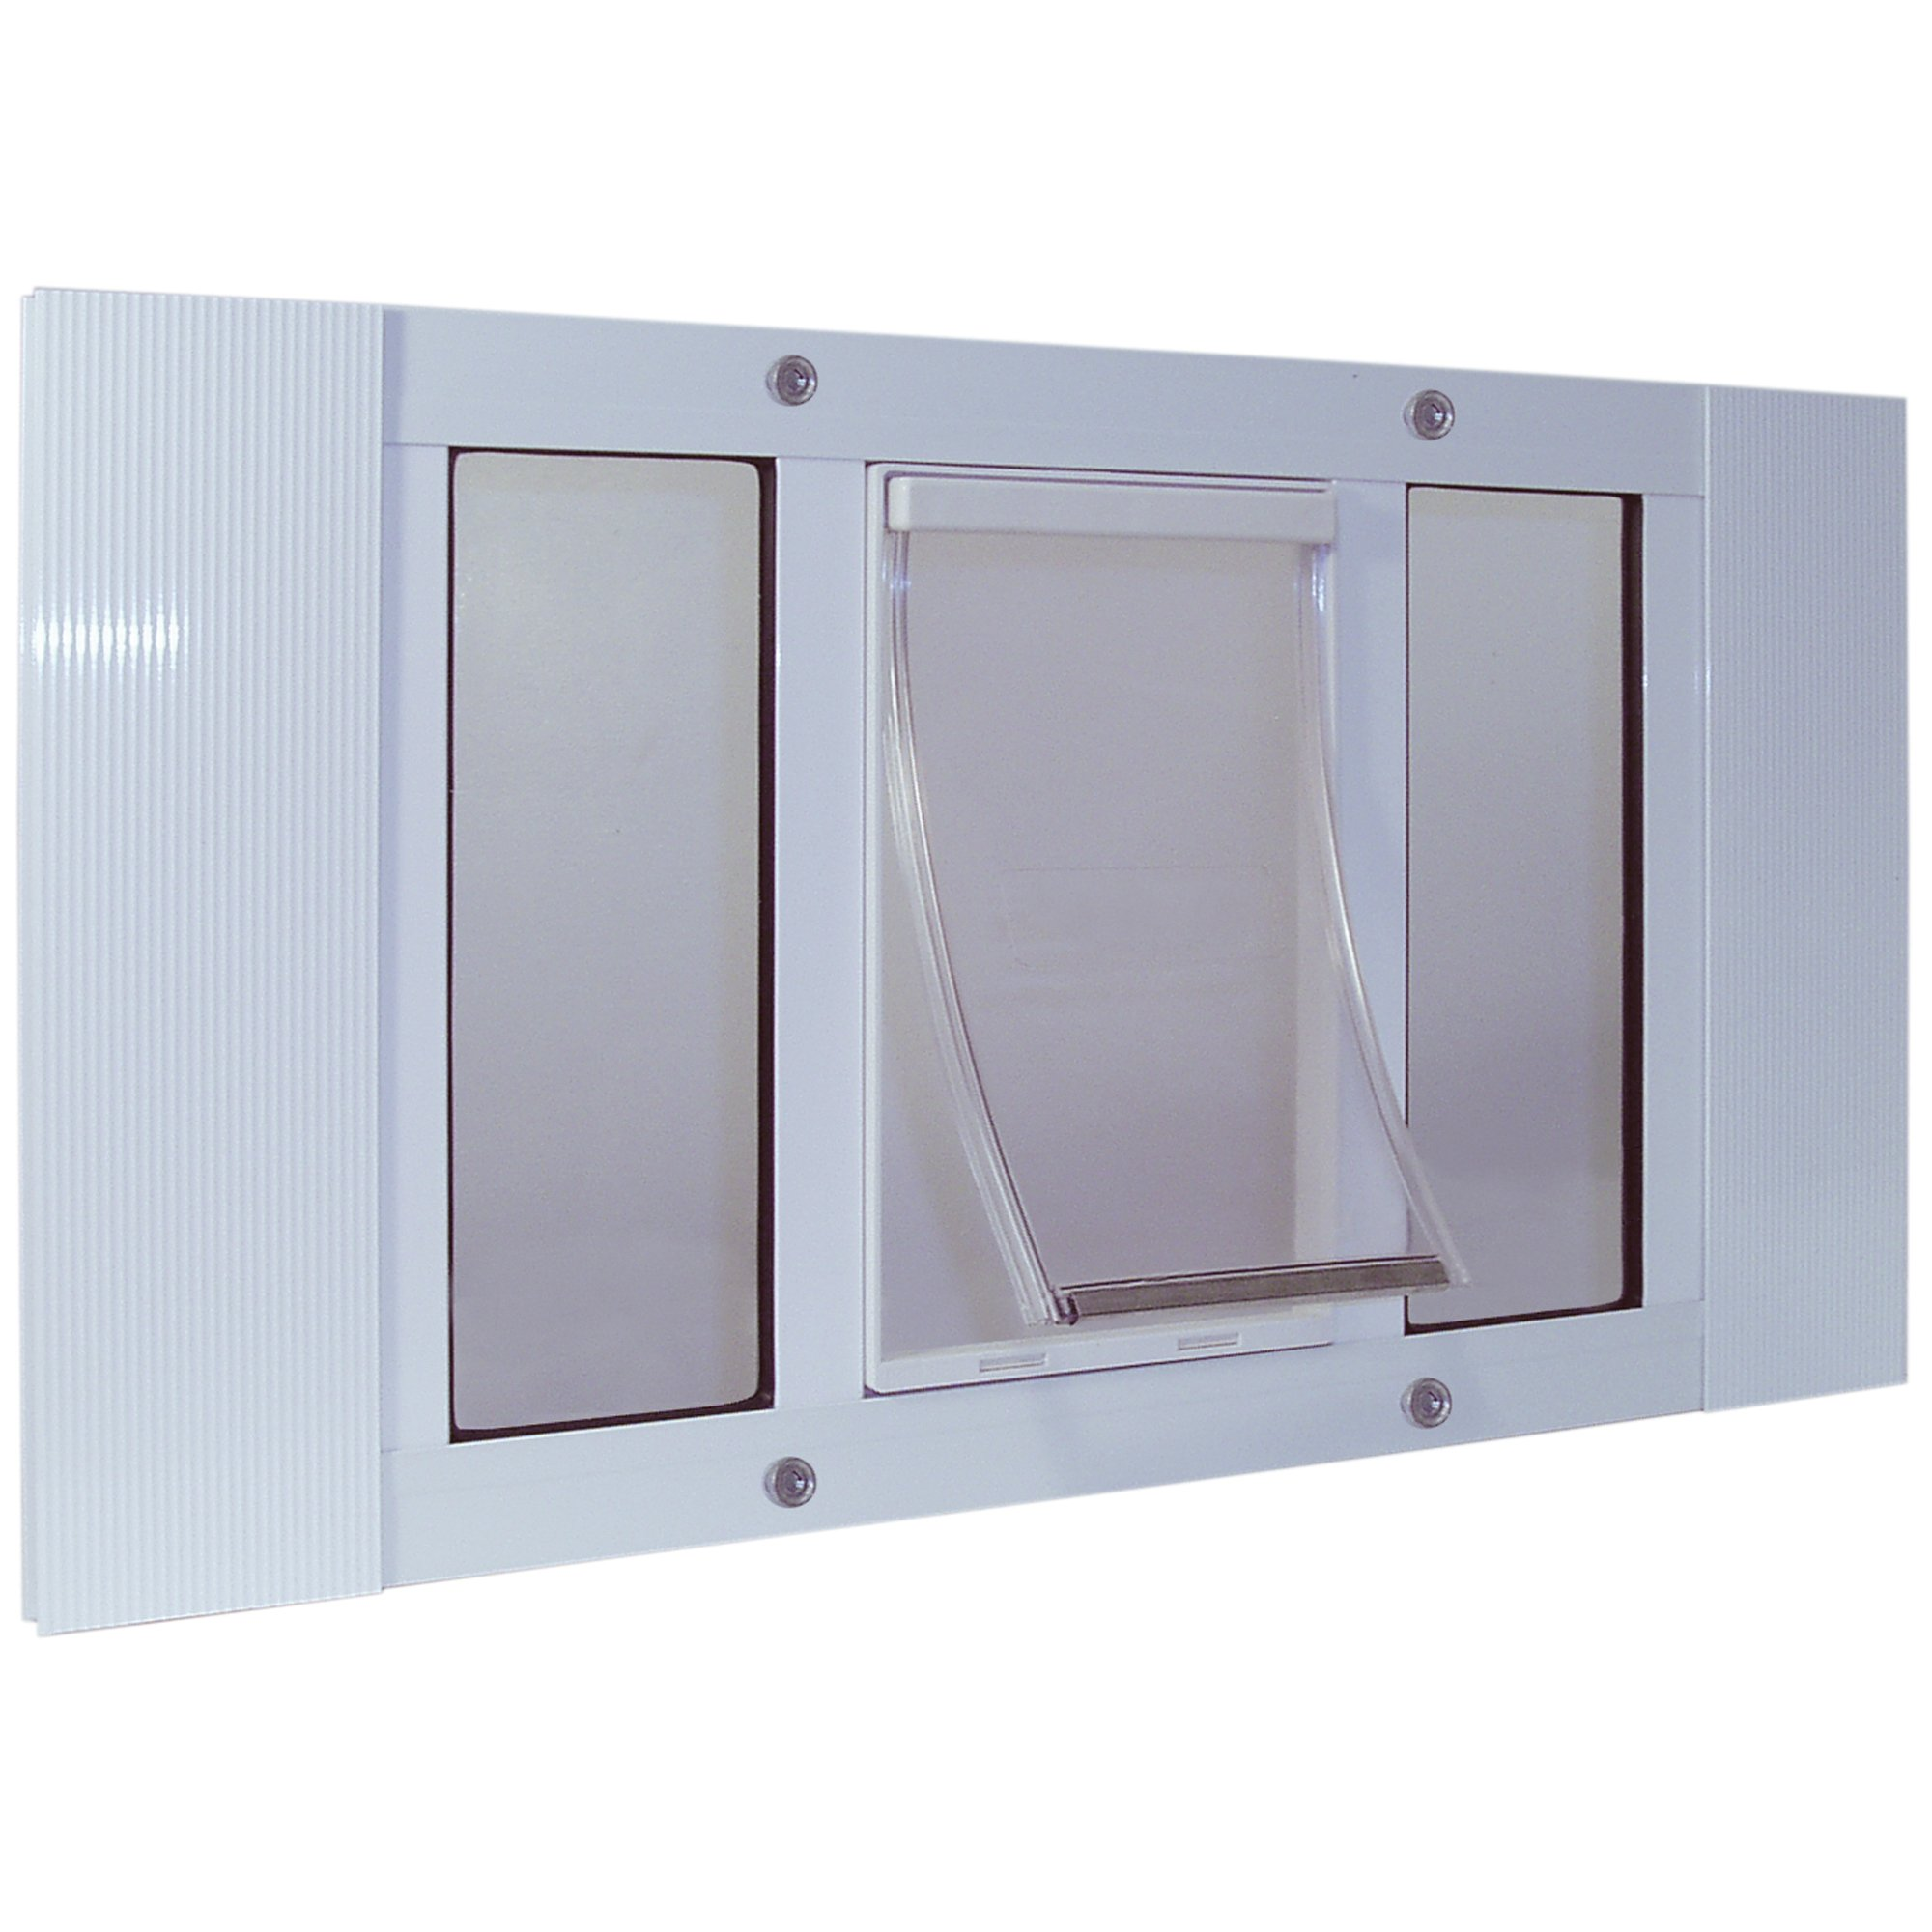 Ideal Pet Products 23SWDS Aluminum Sash Window Pet Door, Small/5'' x 7'', White by Ideal Pet Products